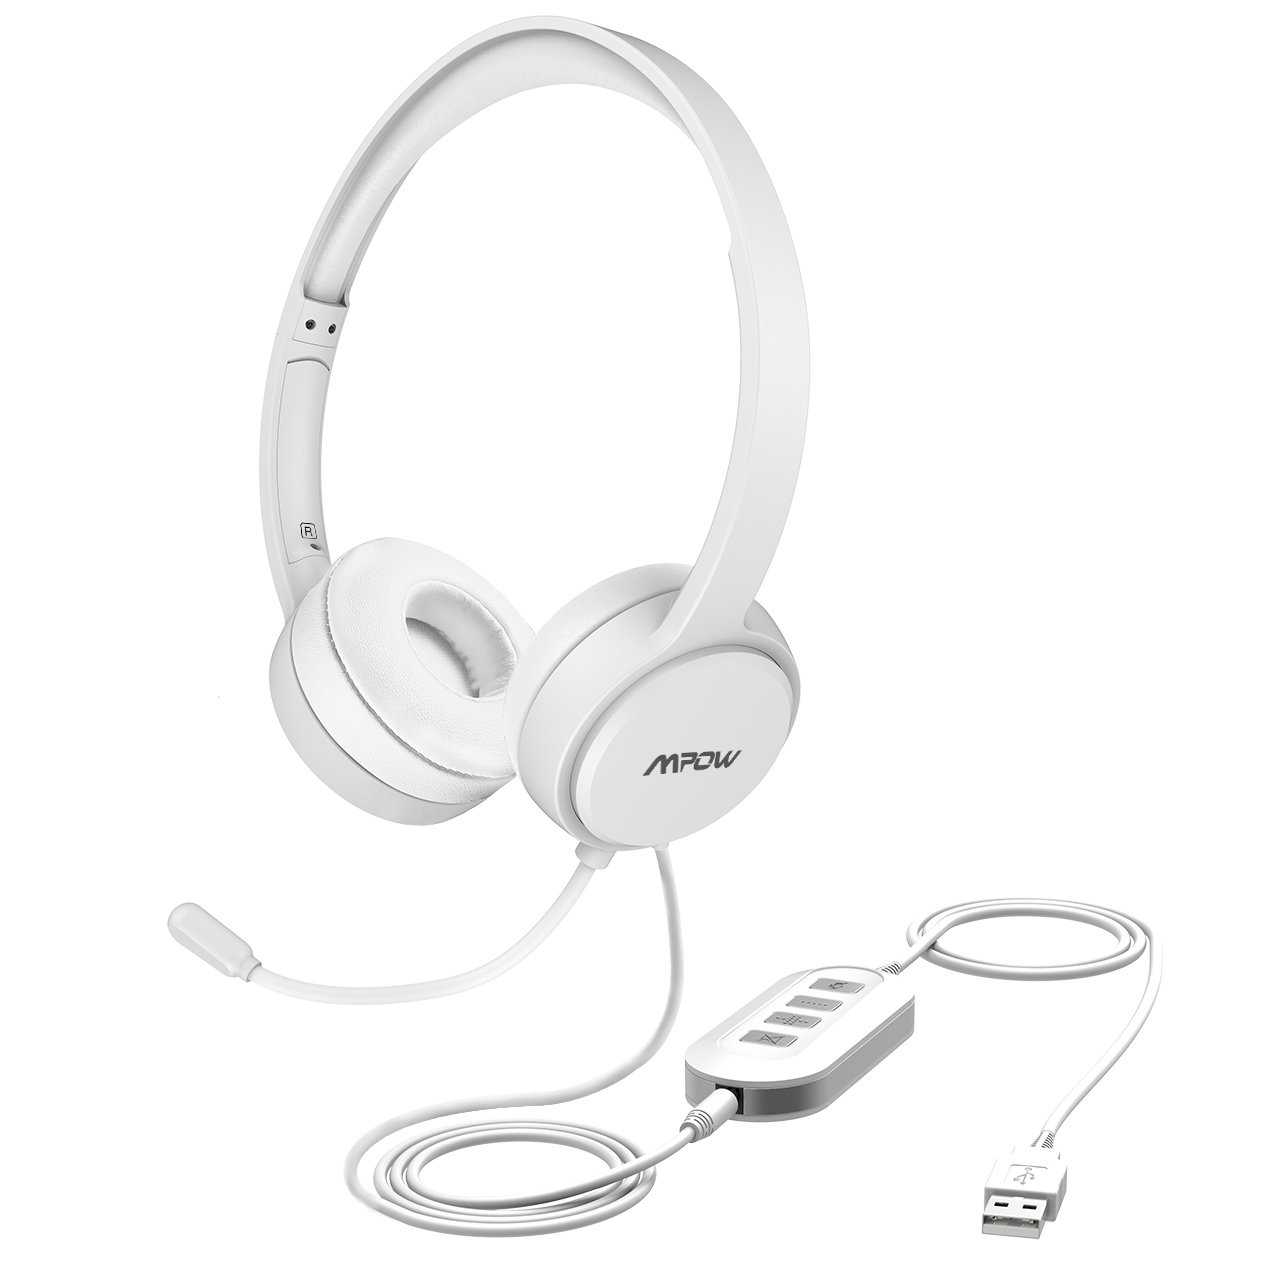 Mpow 071-Upgraded Durability Version, USB Headset with 3.5mm Jack, Lightweight Computer Headset with Noise Cancelling Microphone, Comfy Earmuffs, Wired Headphones for PC, Skype, Phone